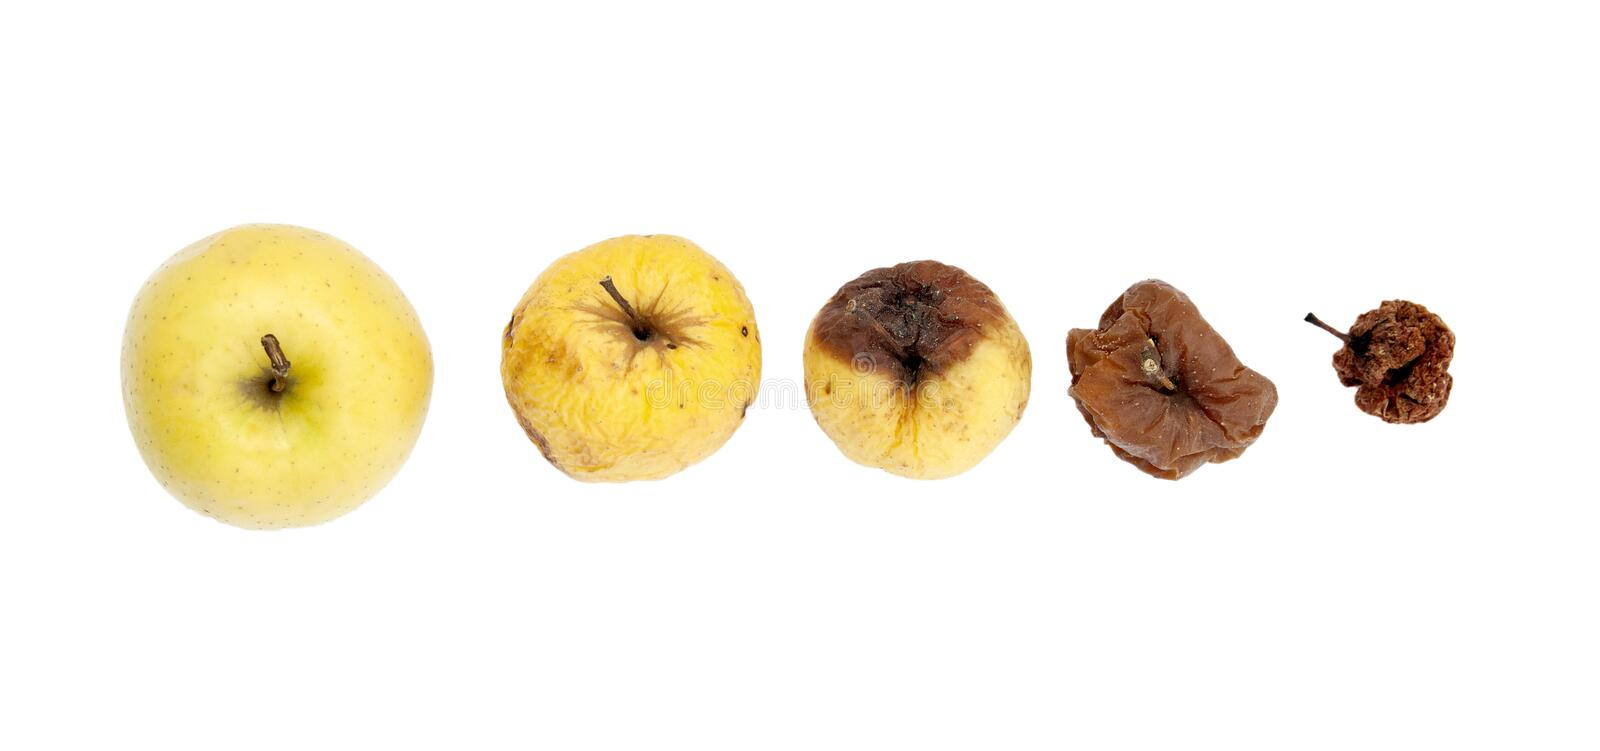 Download Rotting apple. stock image. Image of contrast, nutrition - 24258777